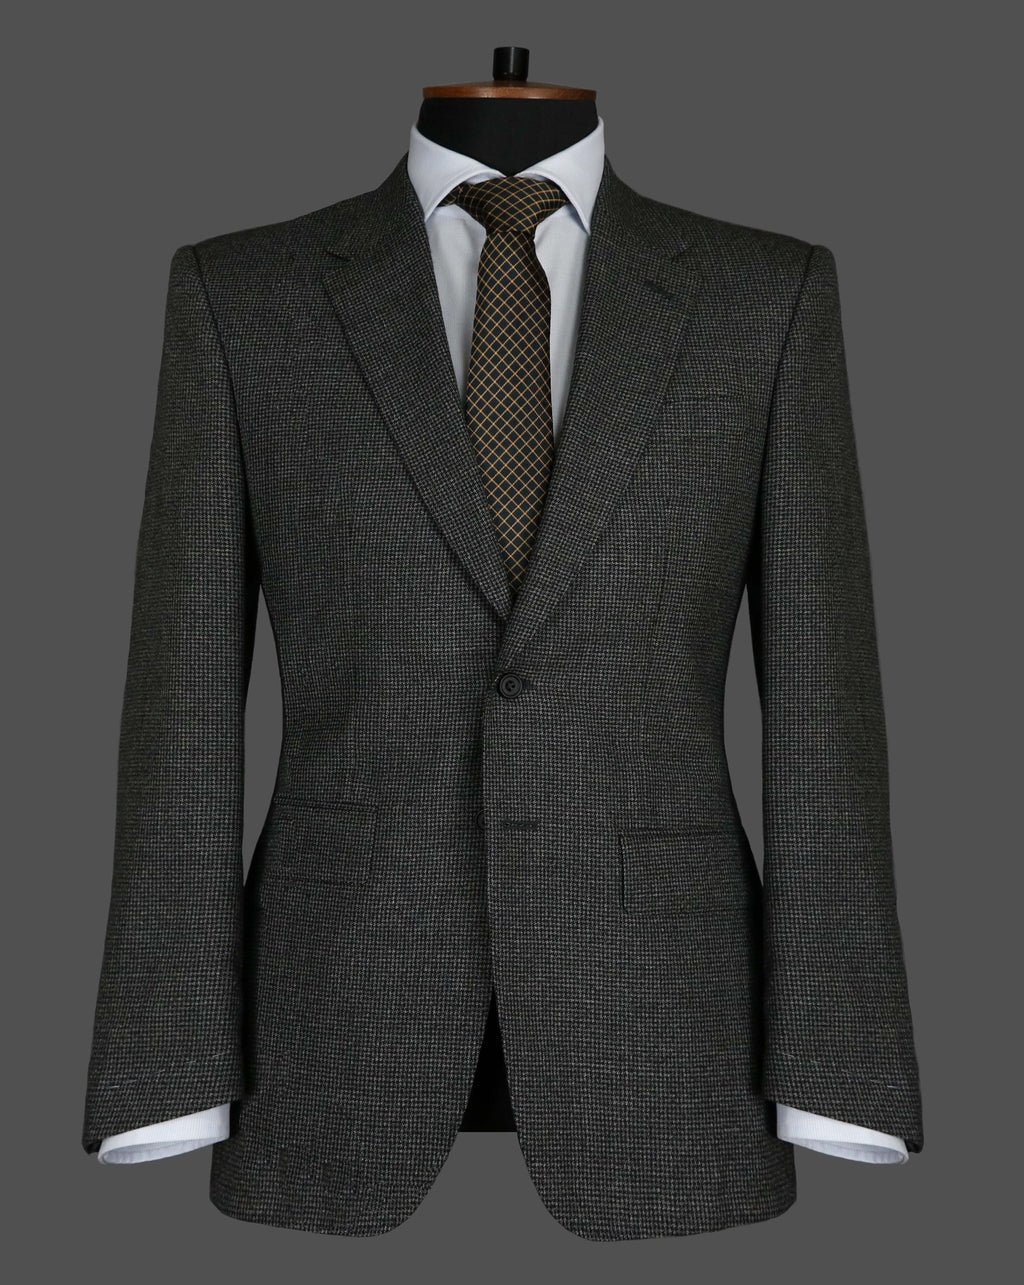 TLA024 - Black and Grey Puppytooth Suit